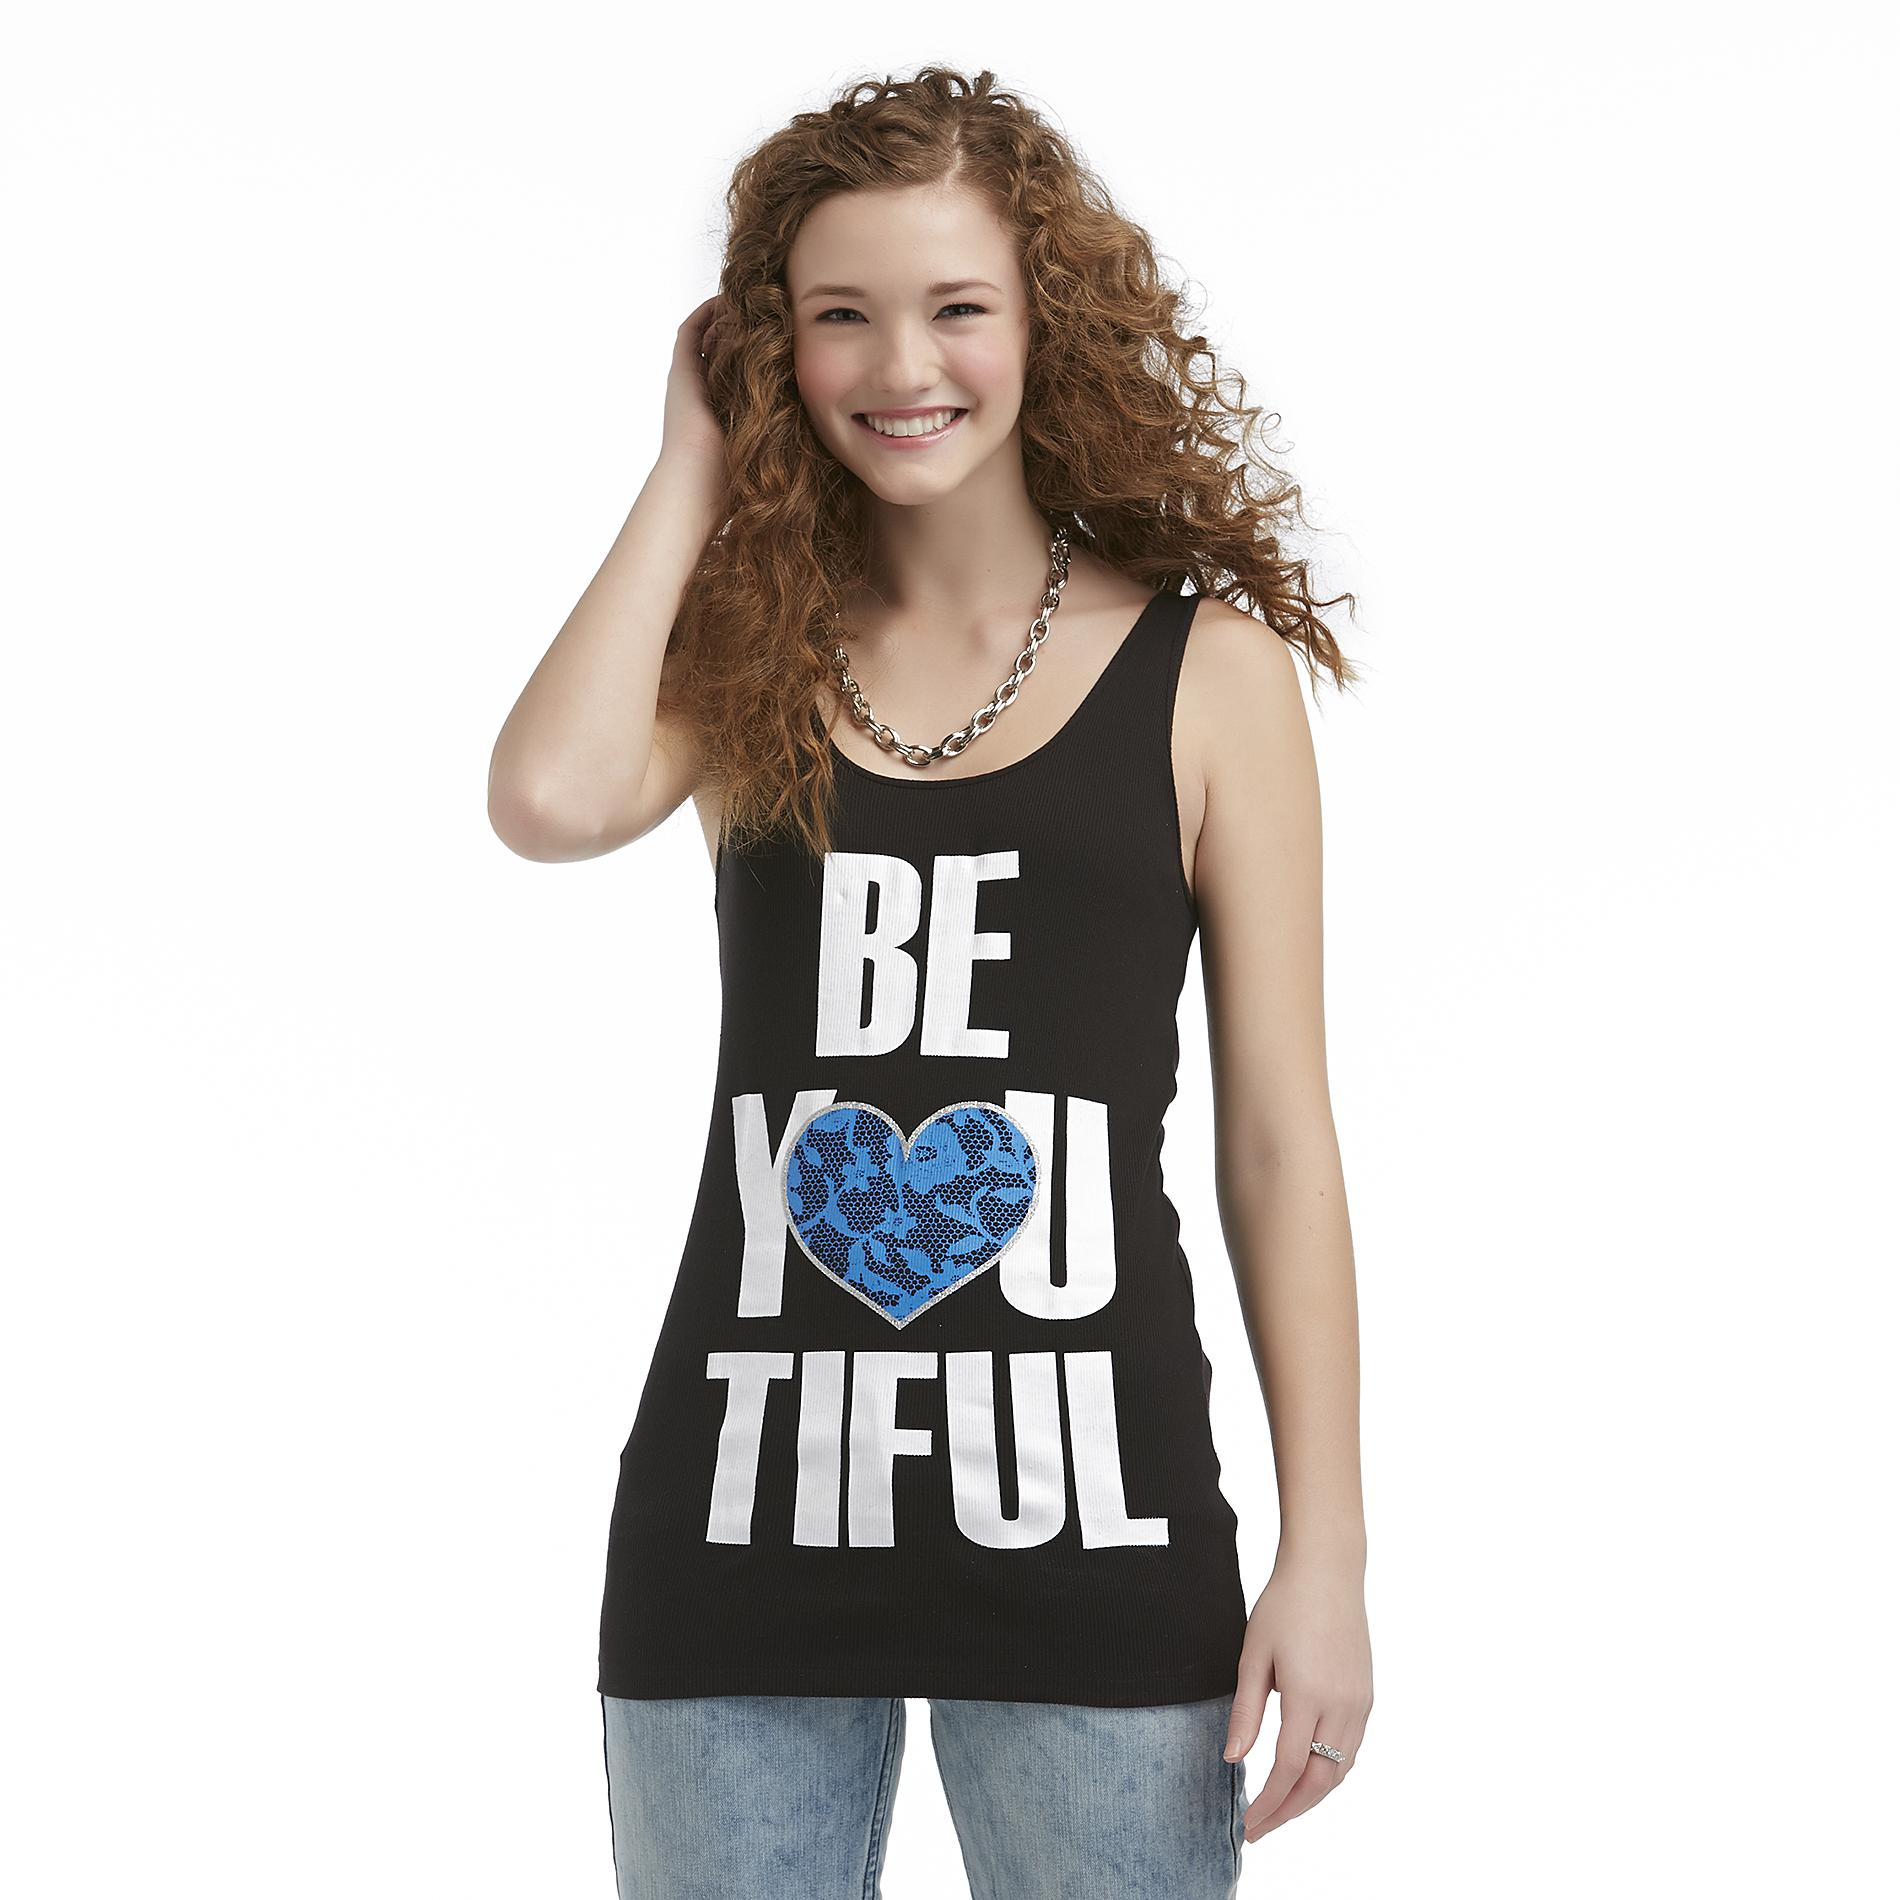 Joe by Joe Boxer Women's Graphic Tank Top - Heart at Sears.com